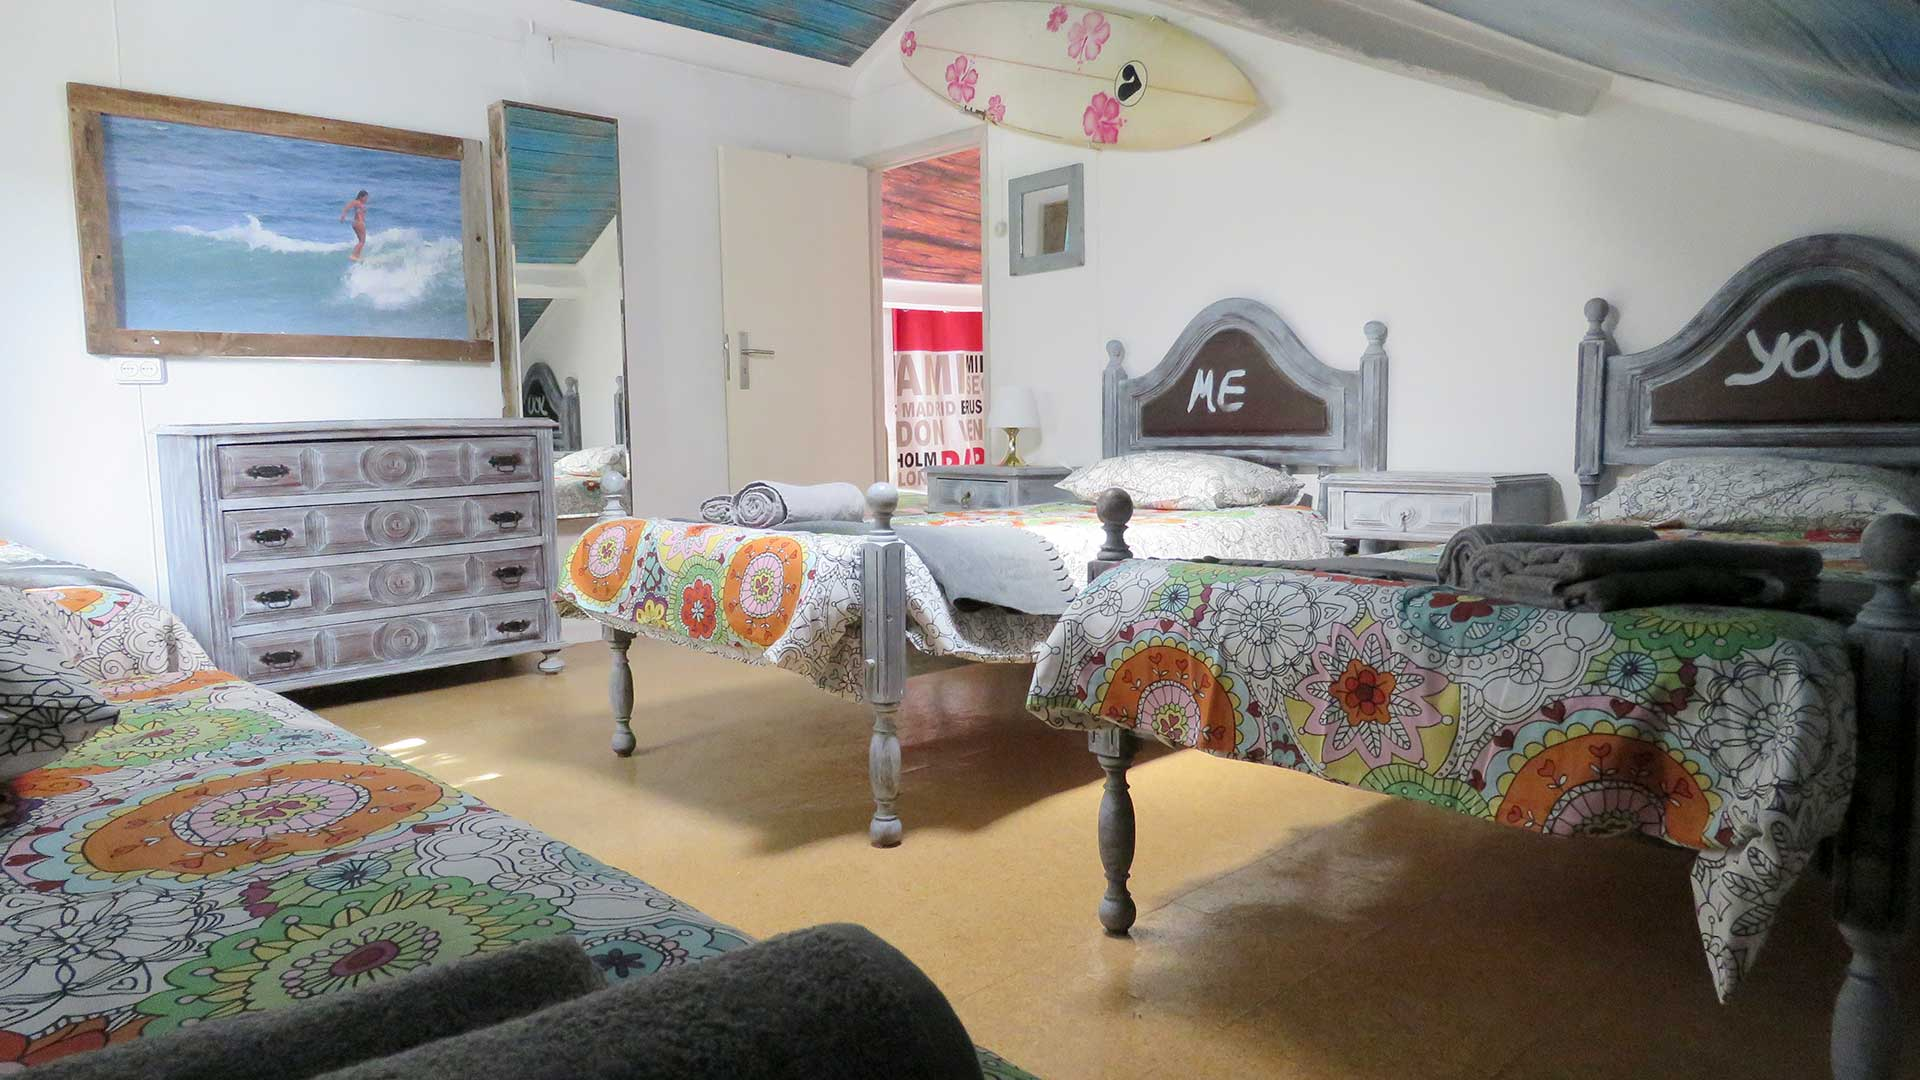 Incredible Planet discount 10 percent off surfing holiday in Costa de Caparica